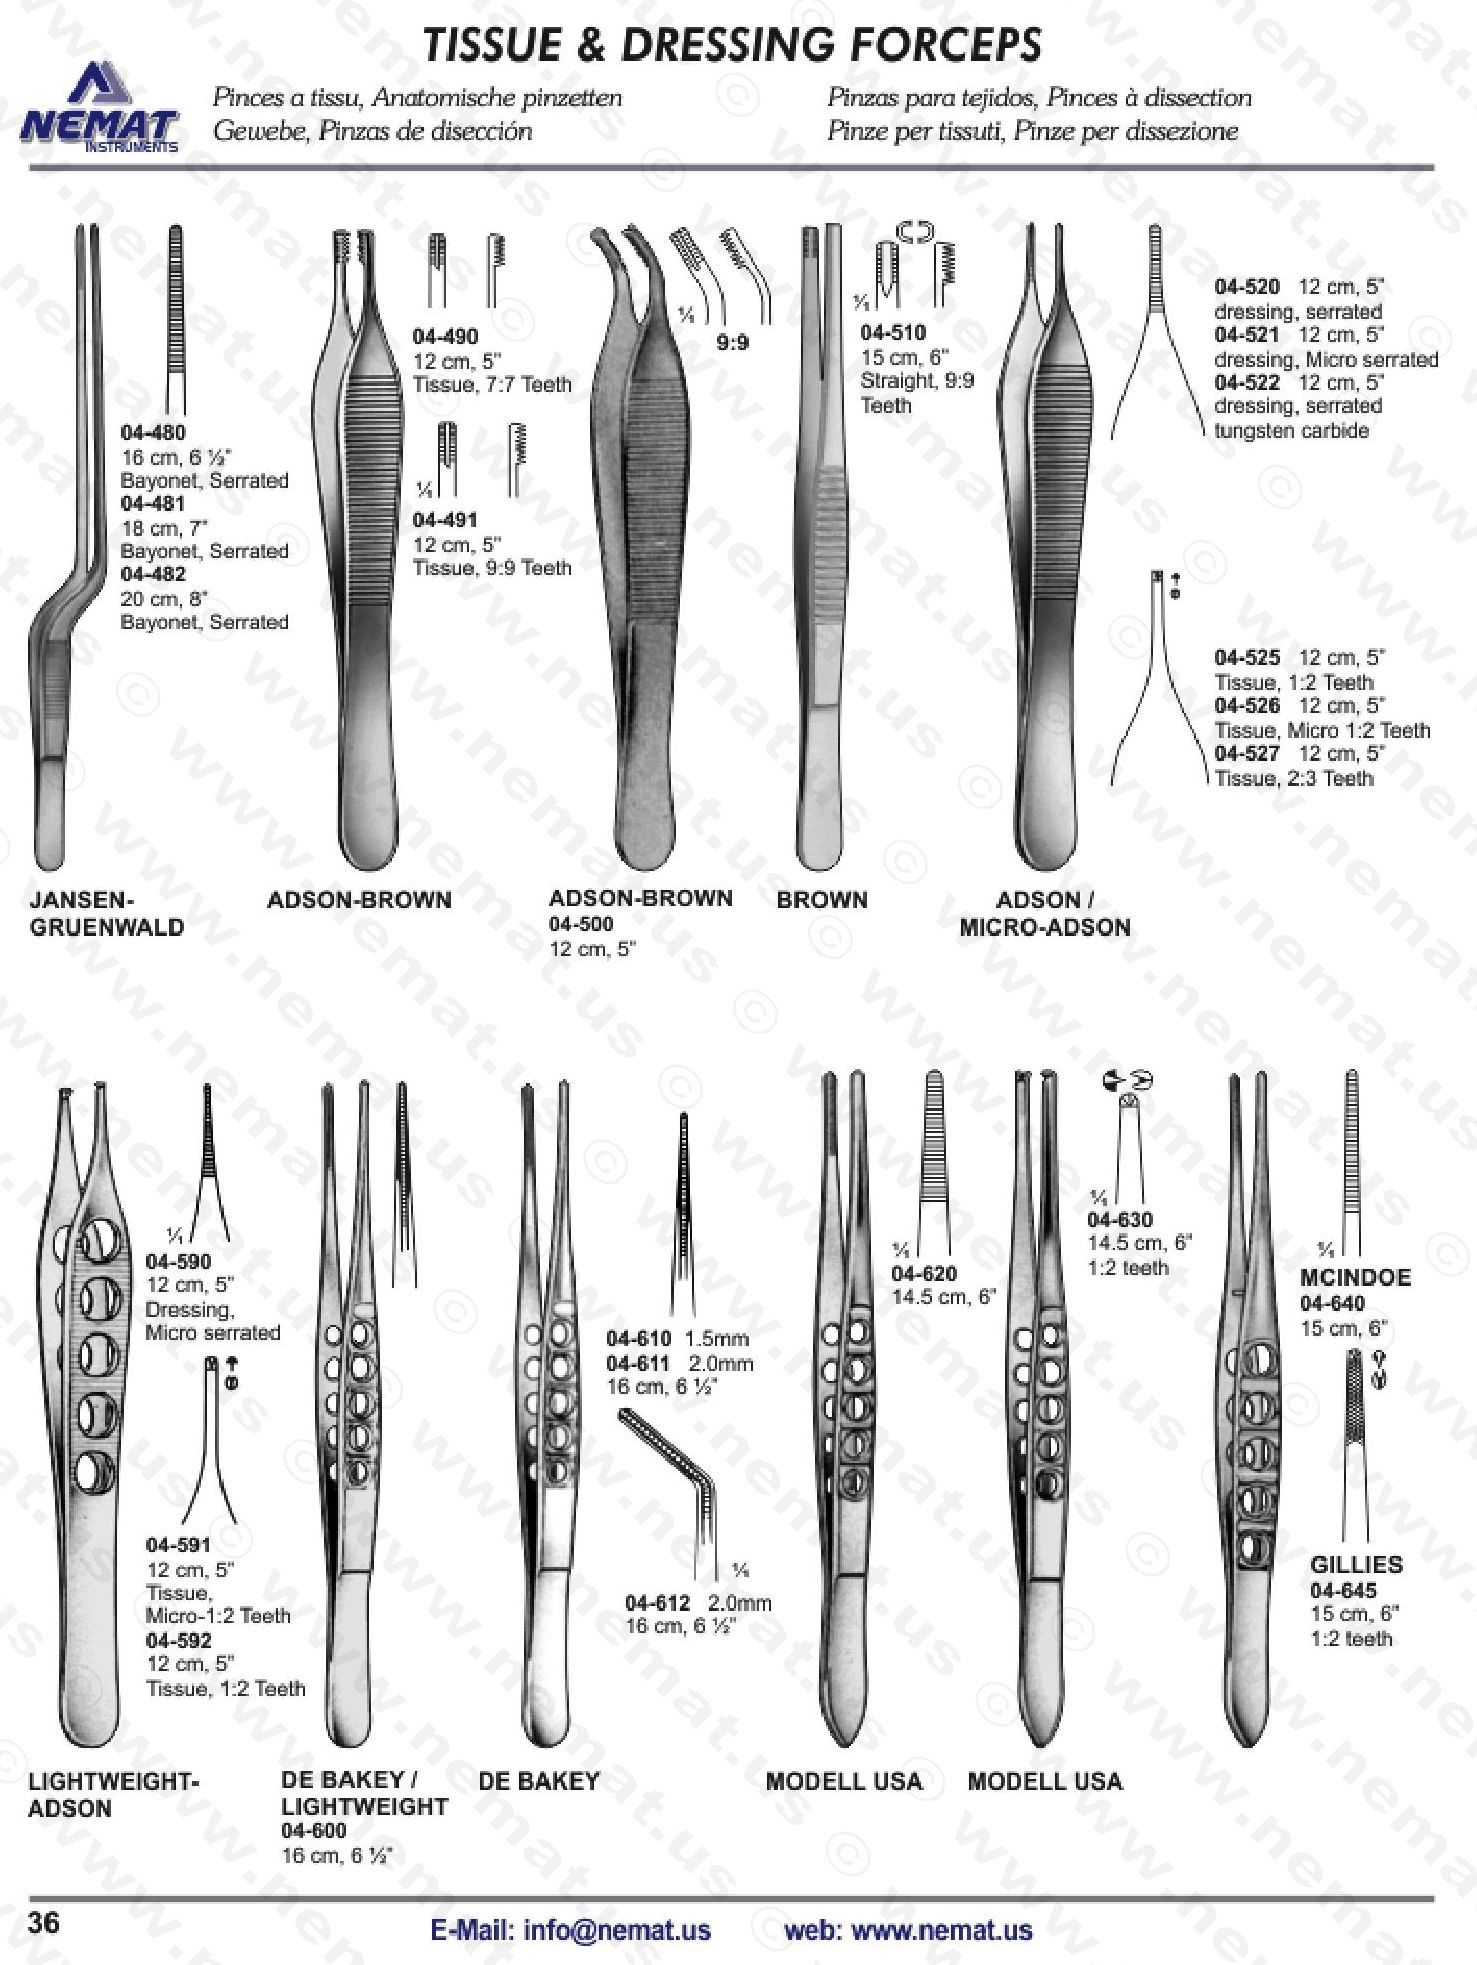 Tissue And Dressing Forceps